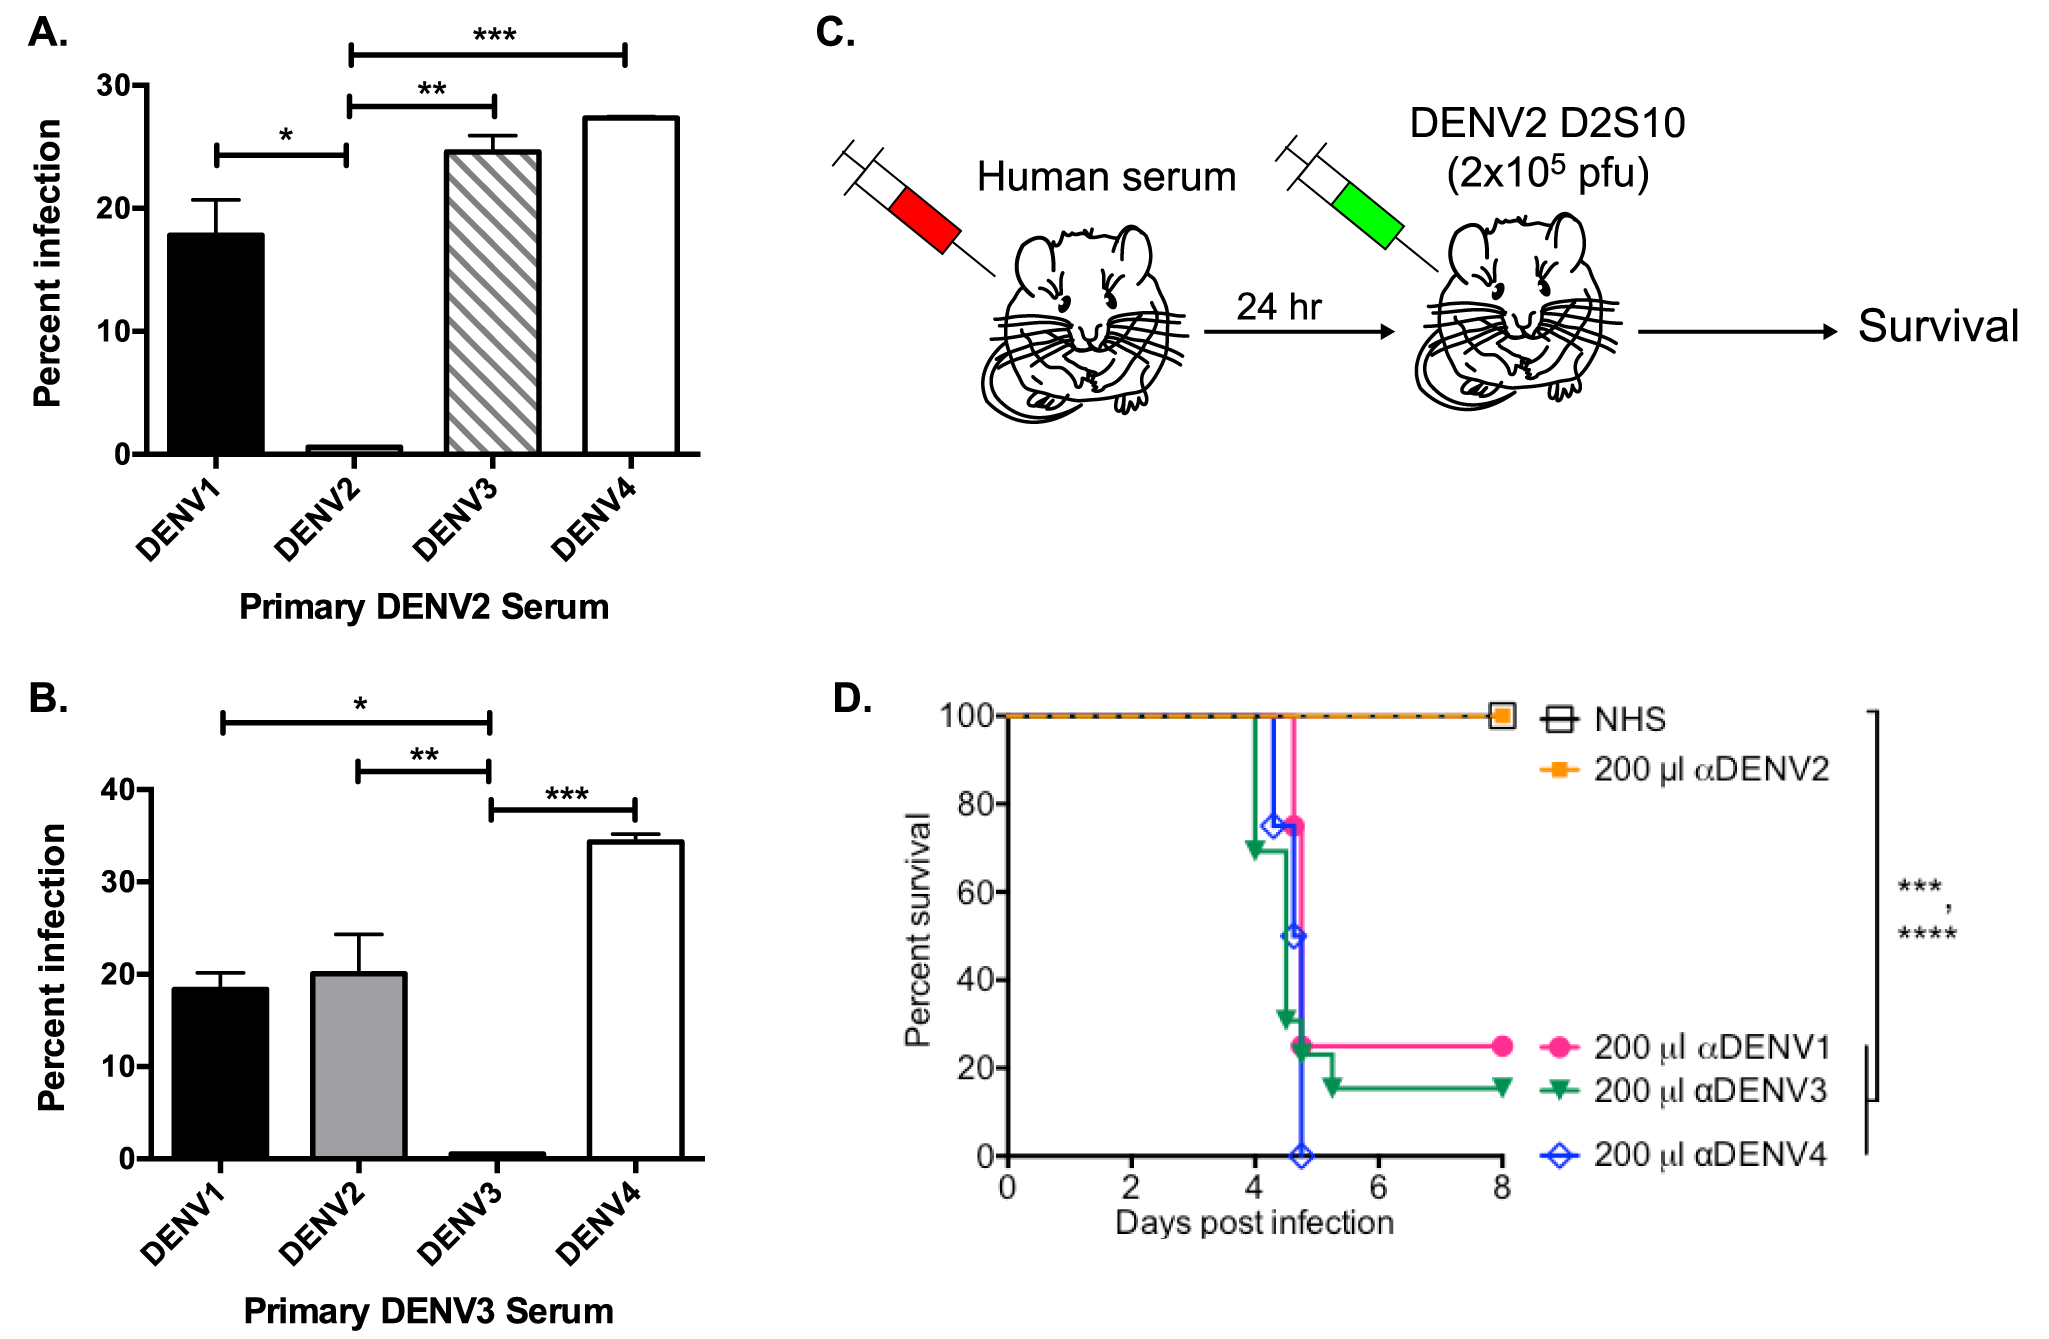 Primary DENV-immune human sera enhance heterotypic but not homotypic serotypes at high serum concentrations <i>in vitro</i> and <i>in vivo</i>.